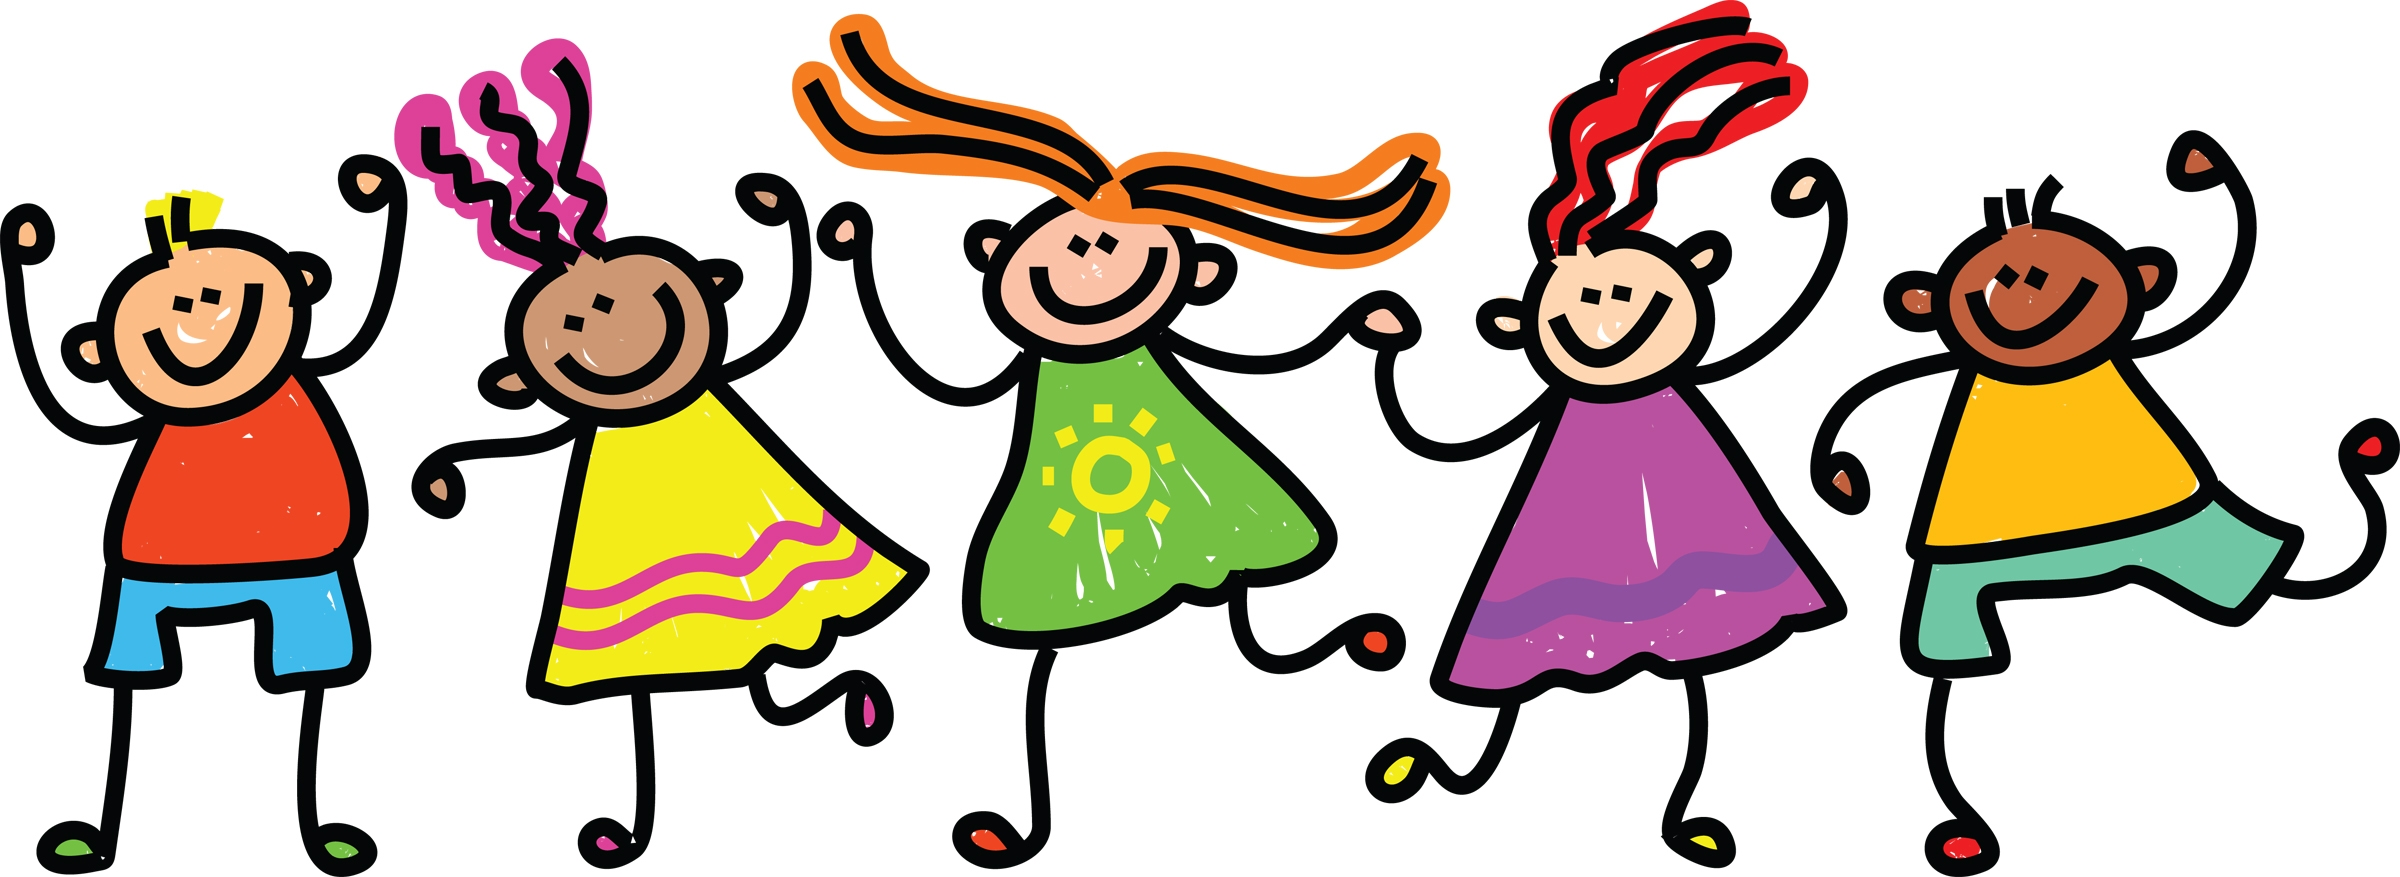 kid clip art free clipart images 2 clipartbarn - Kids Images Free